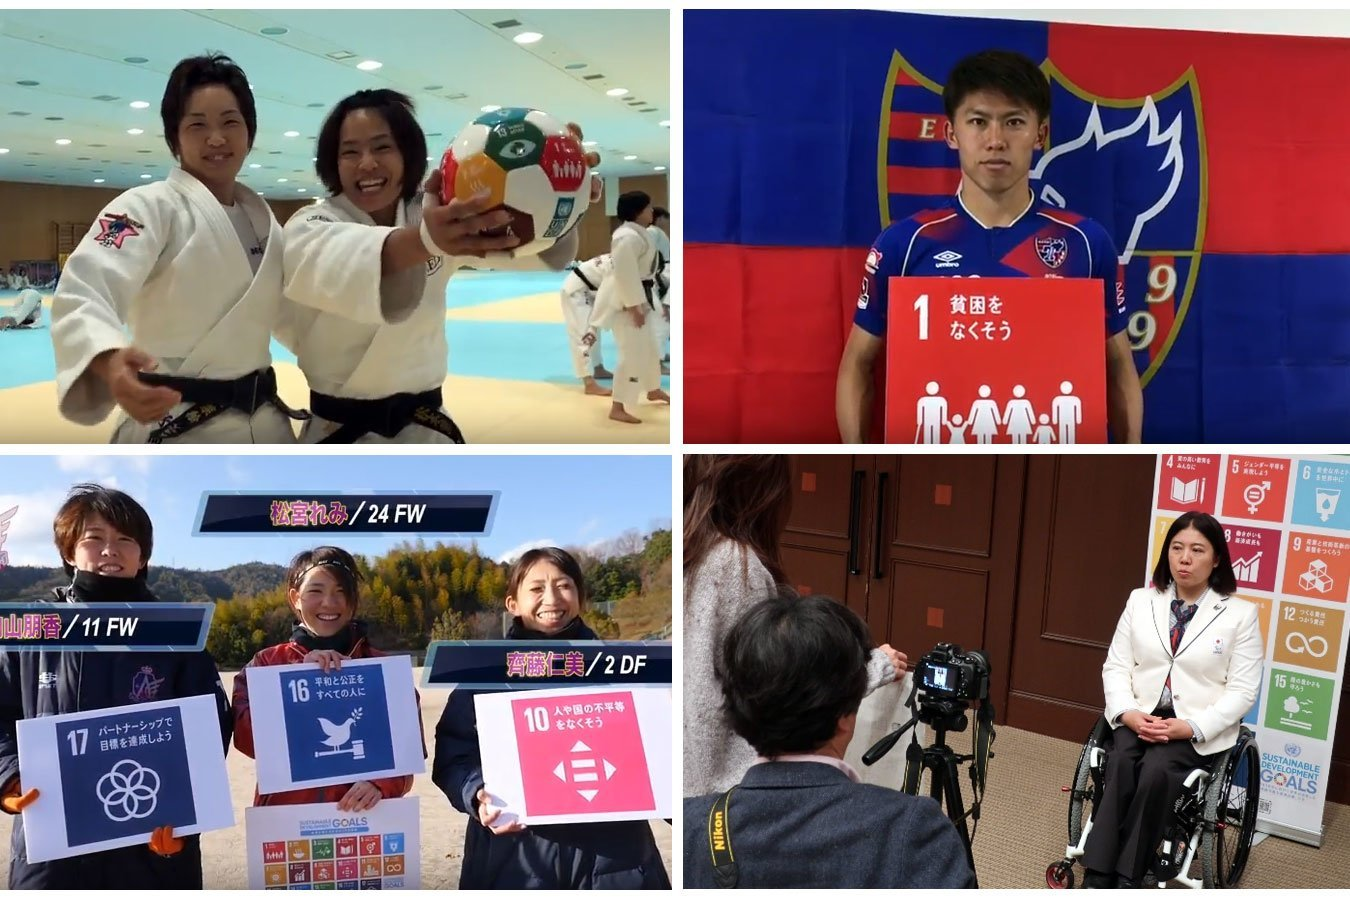 A collage of screen captures from video messages by Japanese athletes joining a United Nations-backed campaign to promote Sustainable Development Goals through sports.